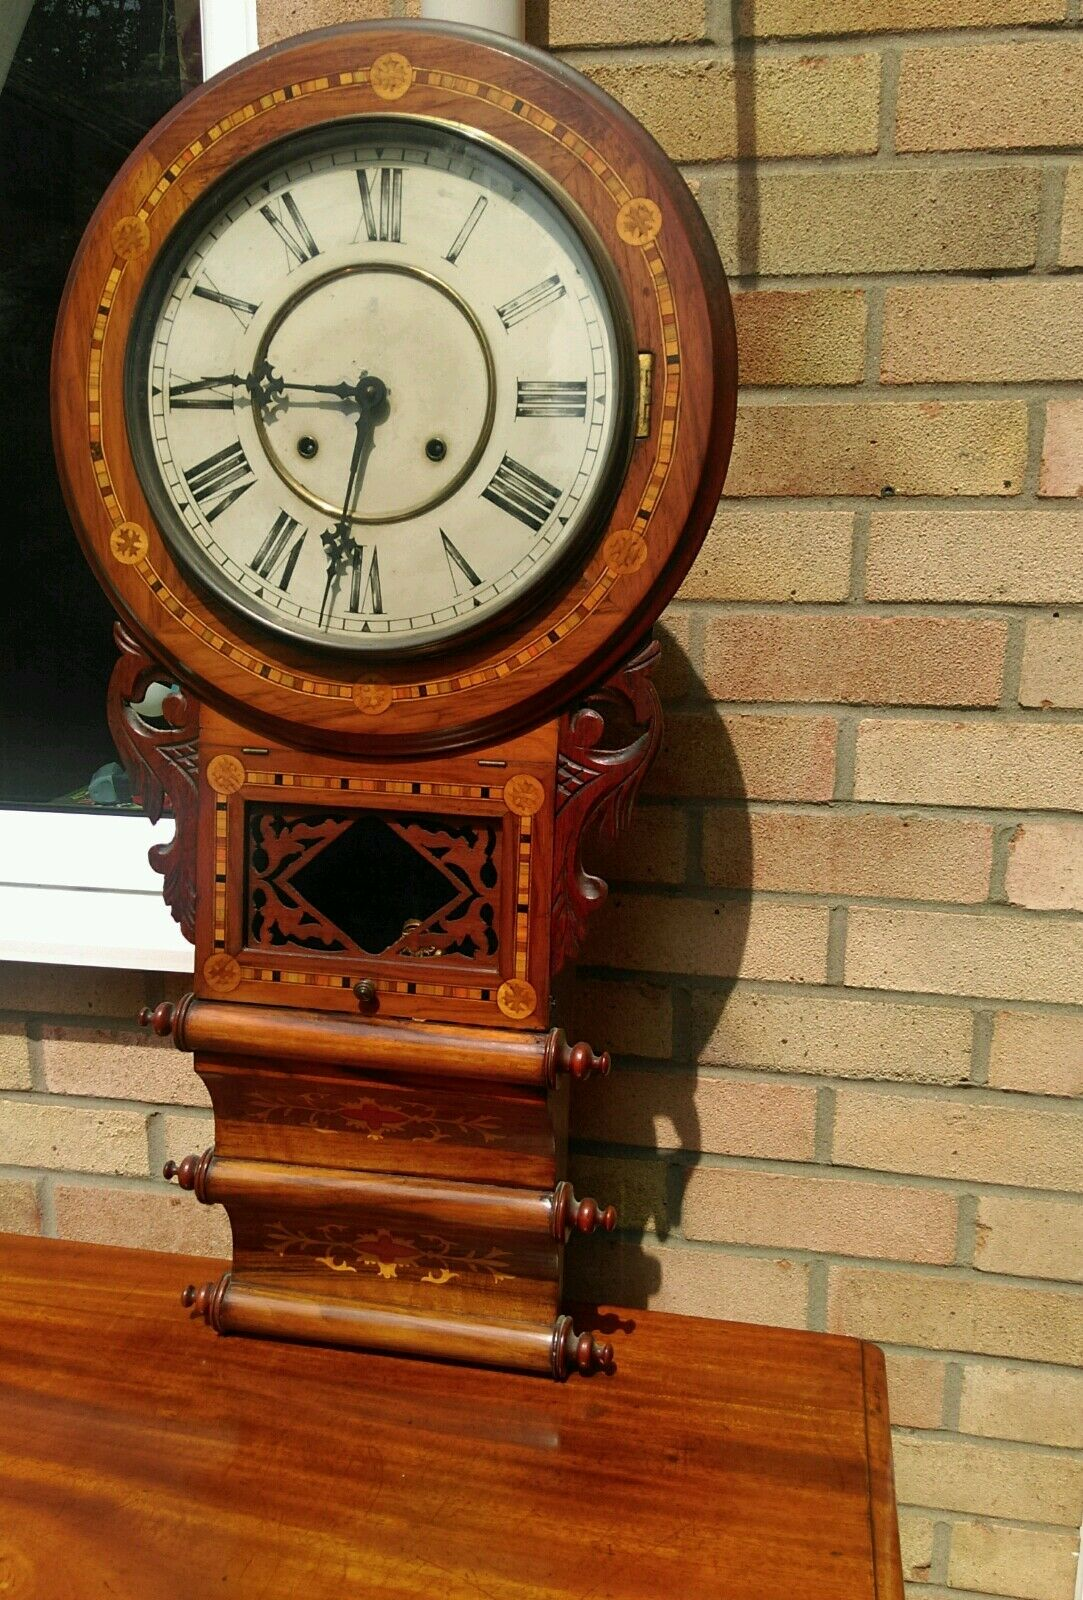 Antique American tunbridgeware inlaid superior 8 day wall clock ornate walnut?